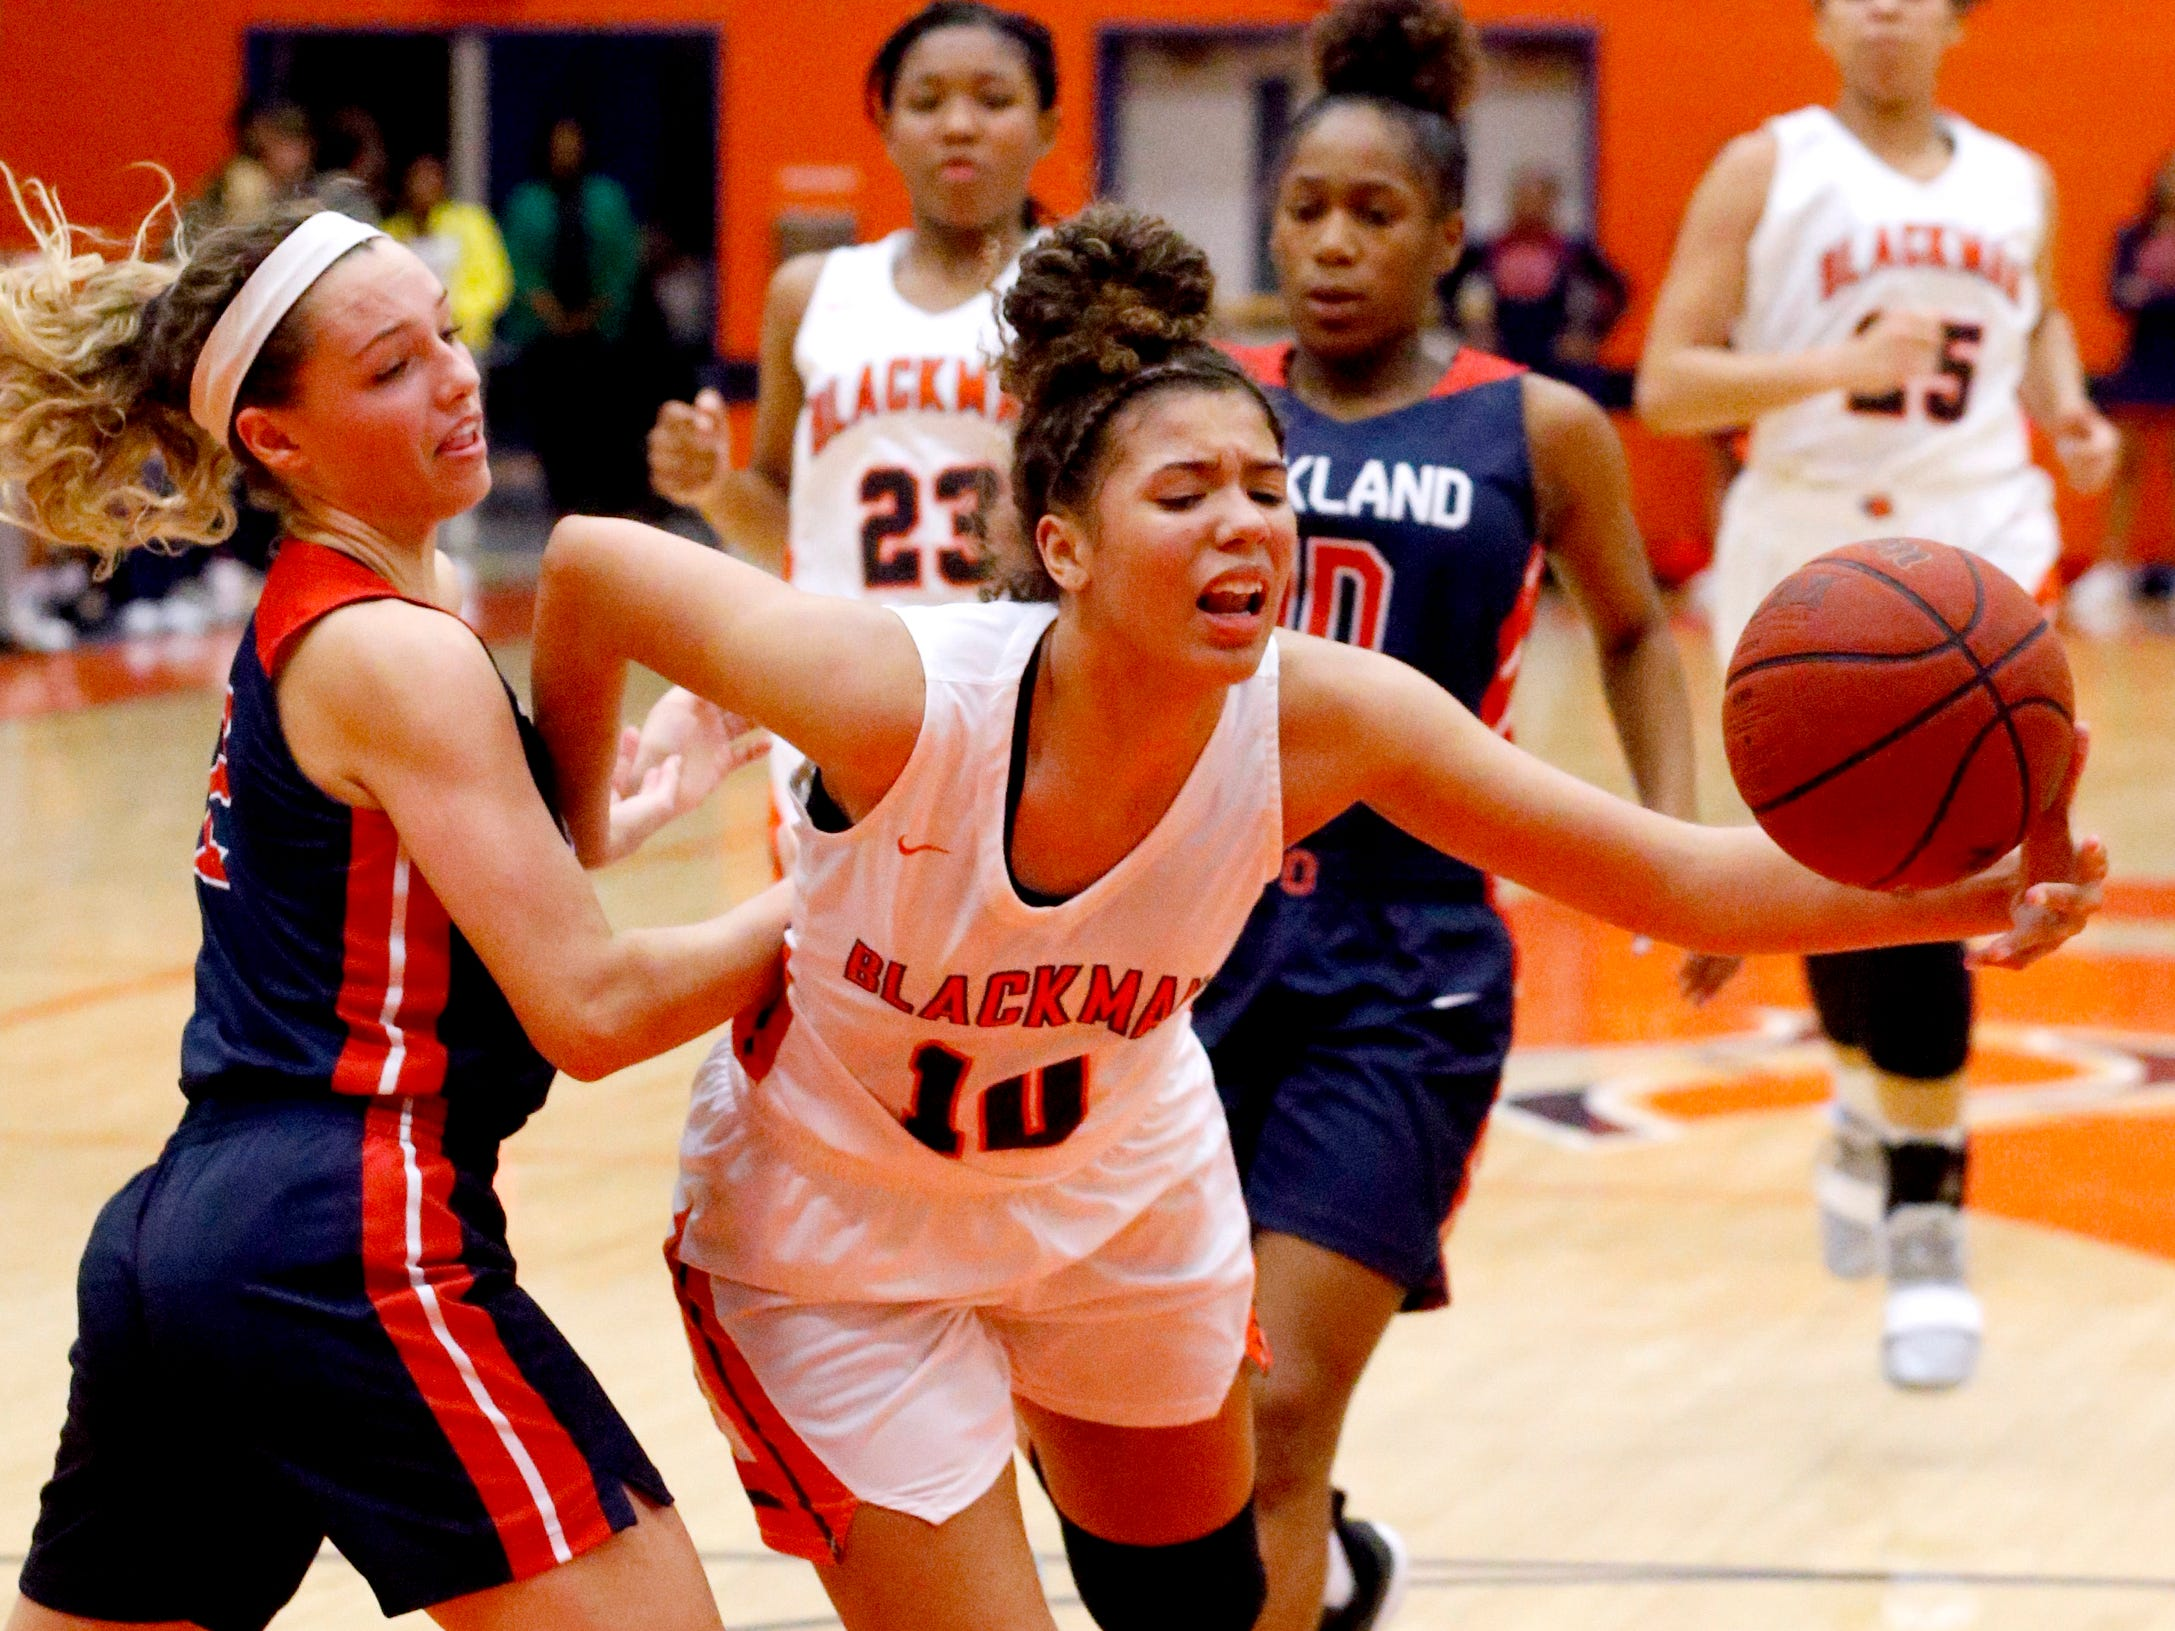 Blackman's Jaida Bond (10) goes up for a shot as she is fouled by Oakland's Faith Adams (2) on Friday, Feb. 8, 2019.